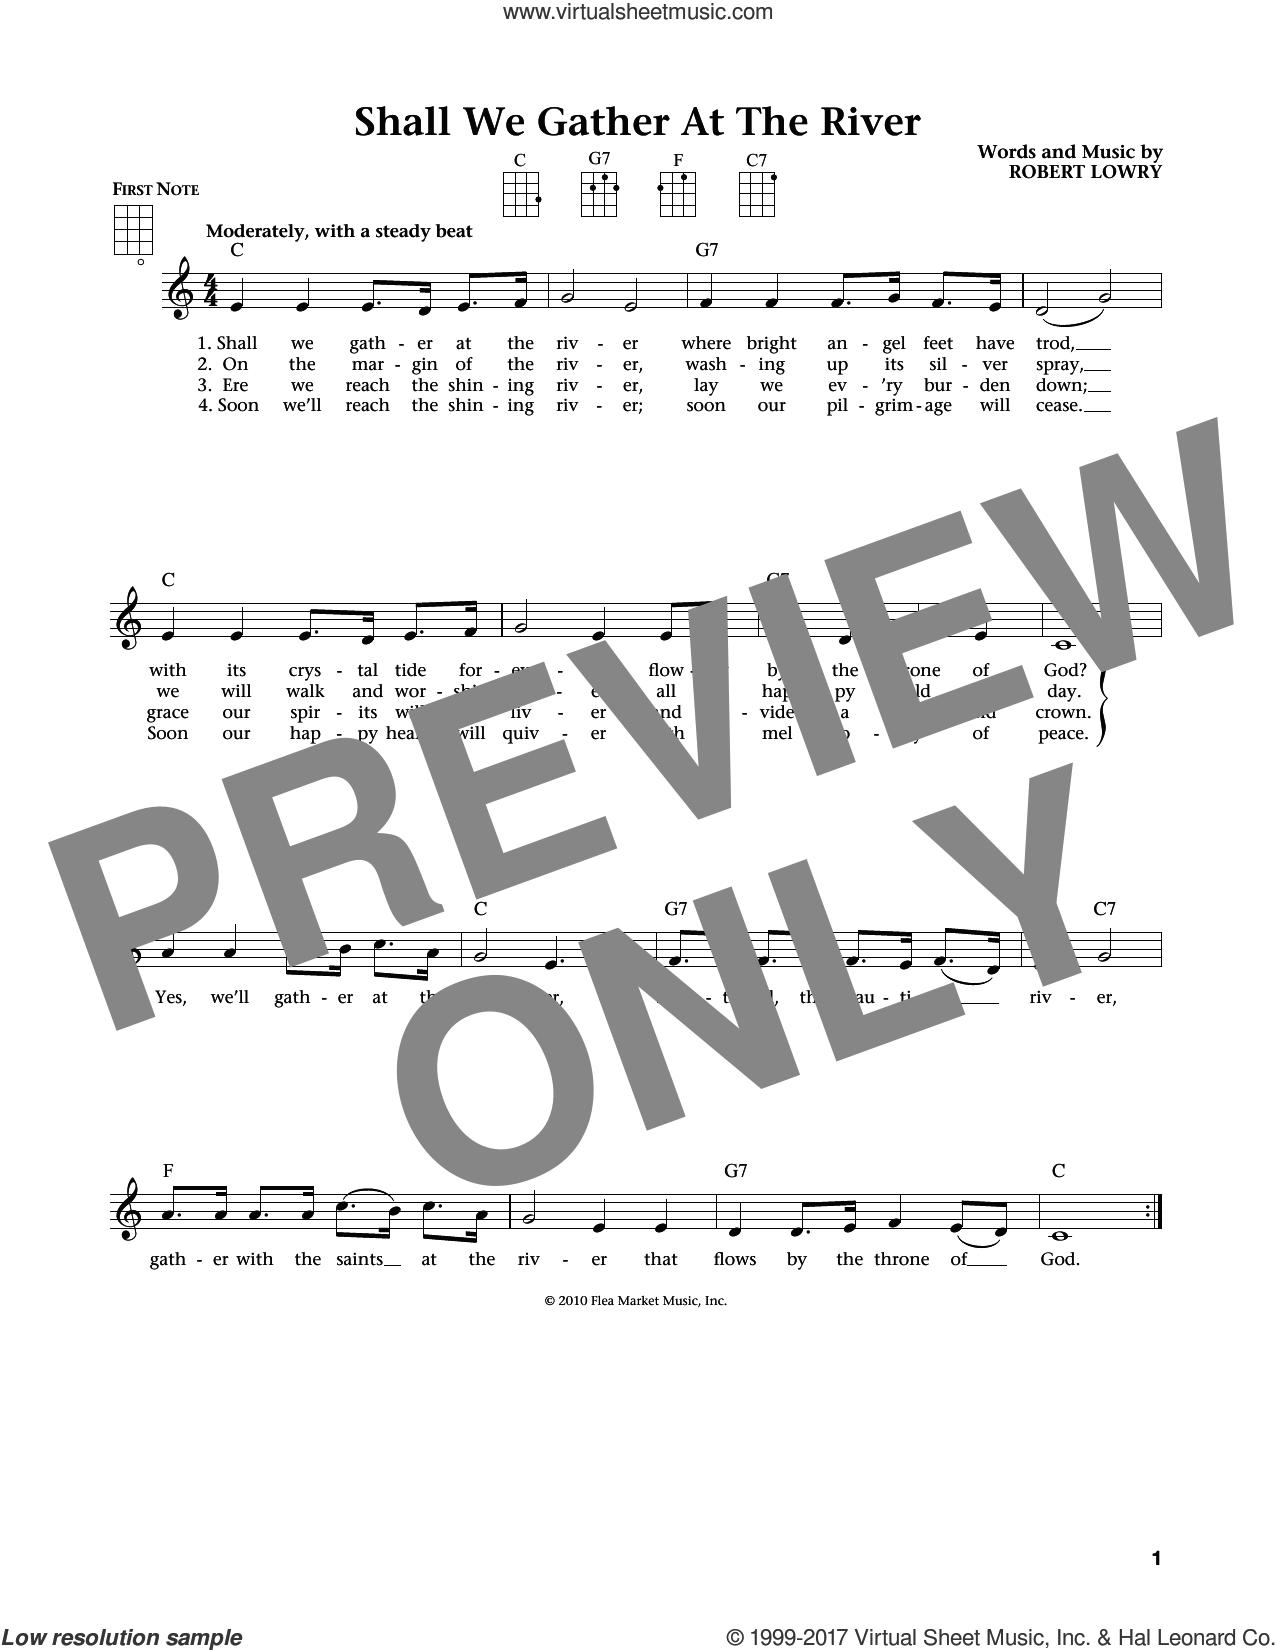 Shall We Gather At The River? (from The Daily Ukulele) (arr. Liz and Jim Beloff) sheet music for ukulele by Robert Lowry, Jim Beloff and Liz Beloff, intermediate skill level